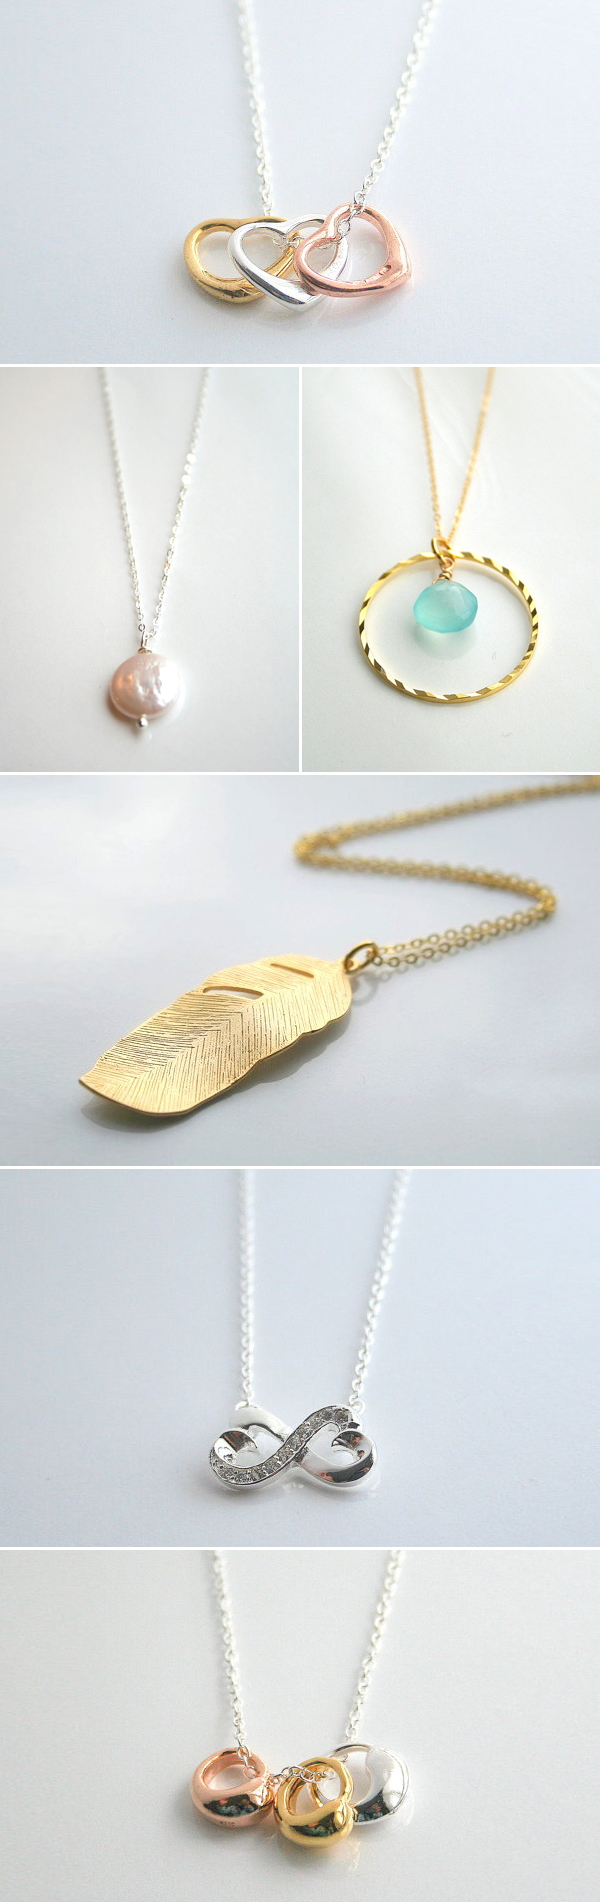 MCT-Design01-necklace